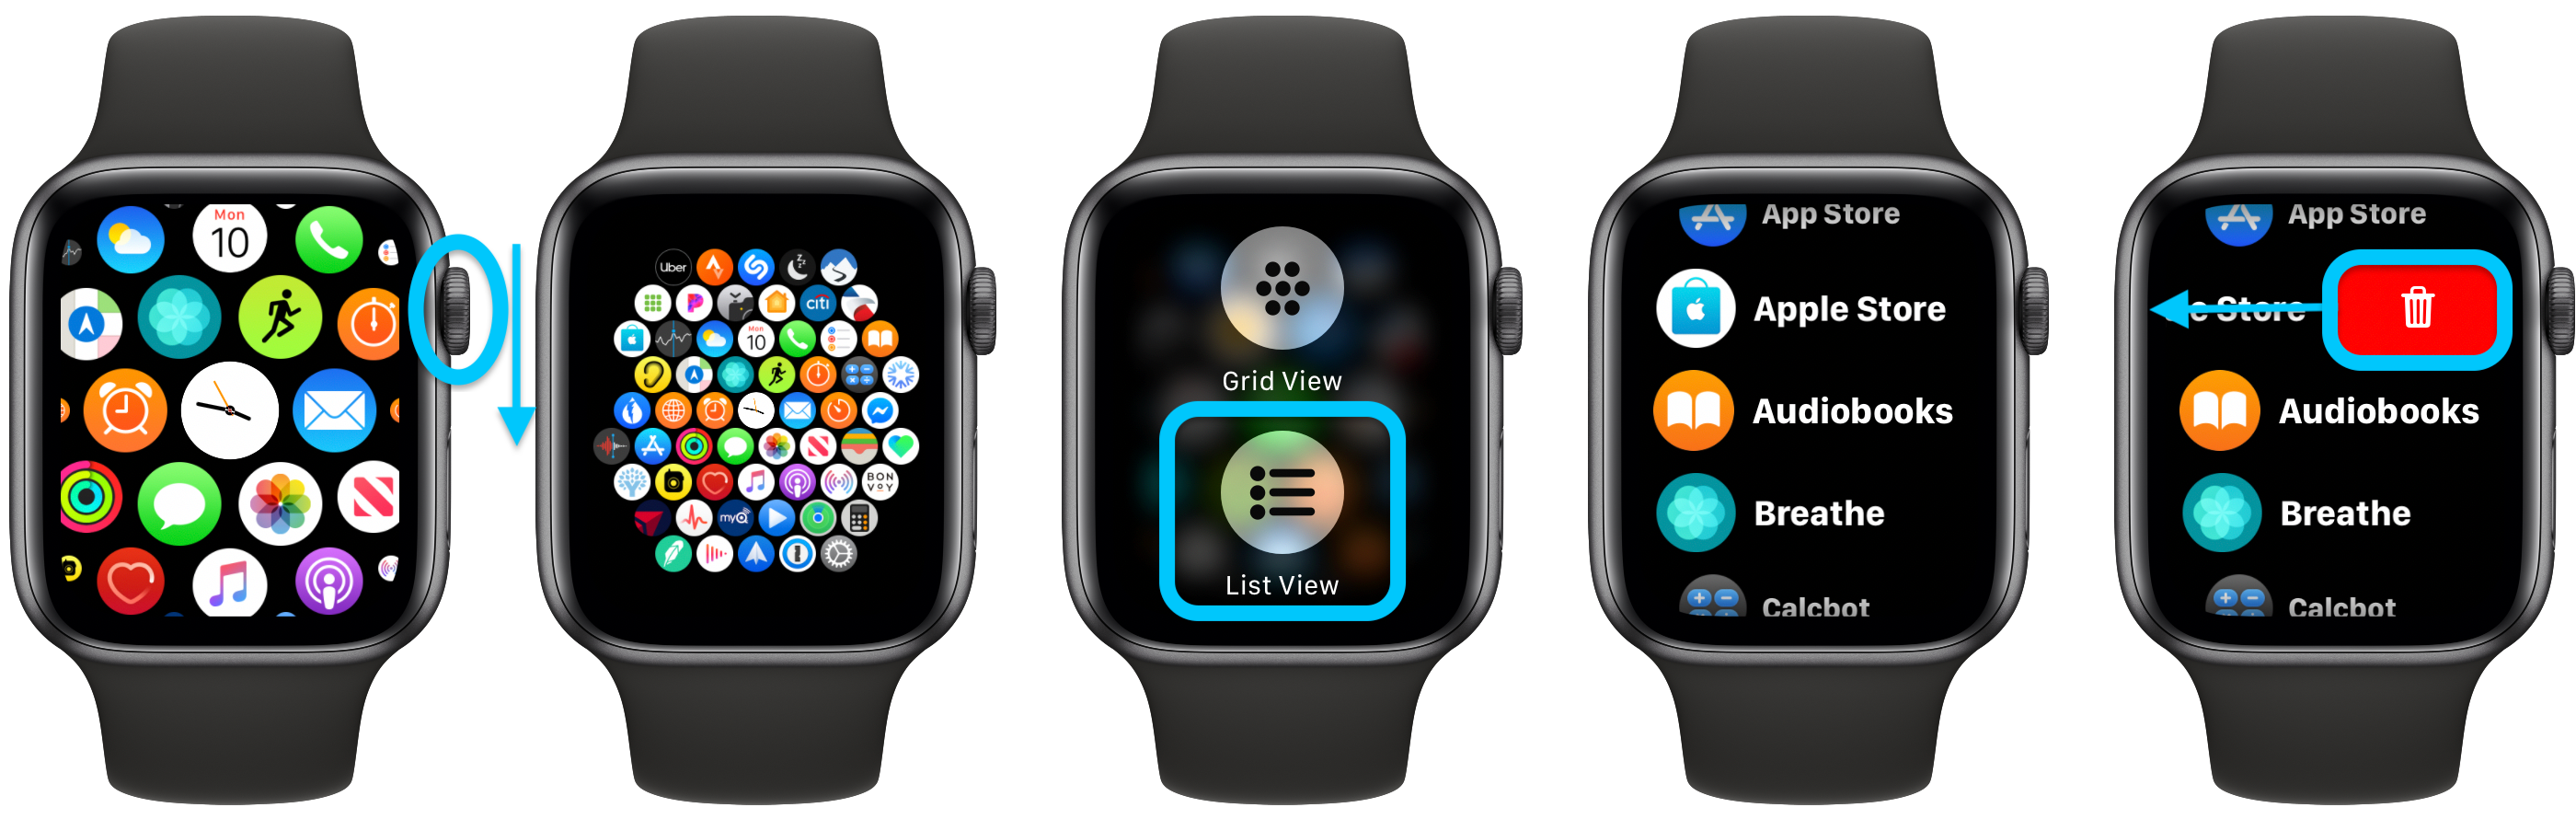 How to see all Apple Watch apps walkthrough 1